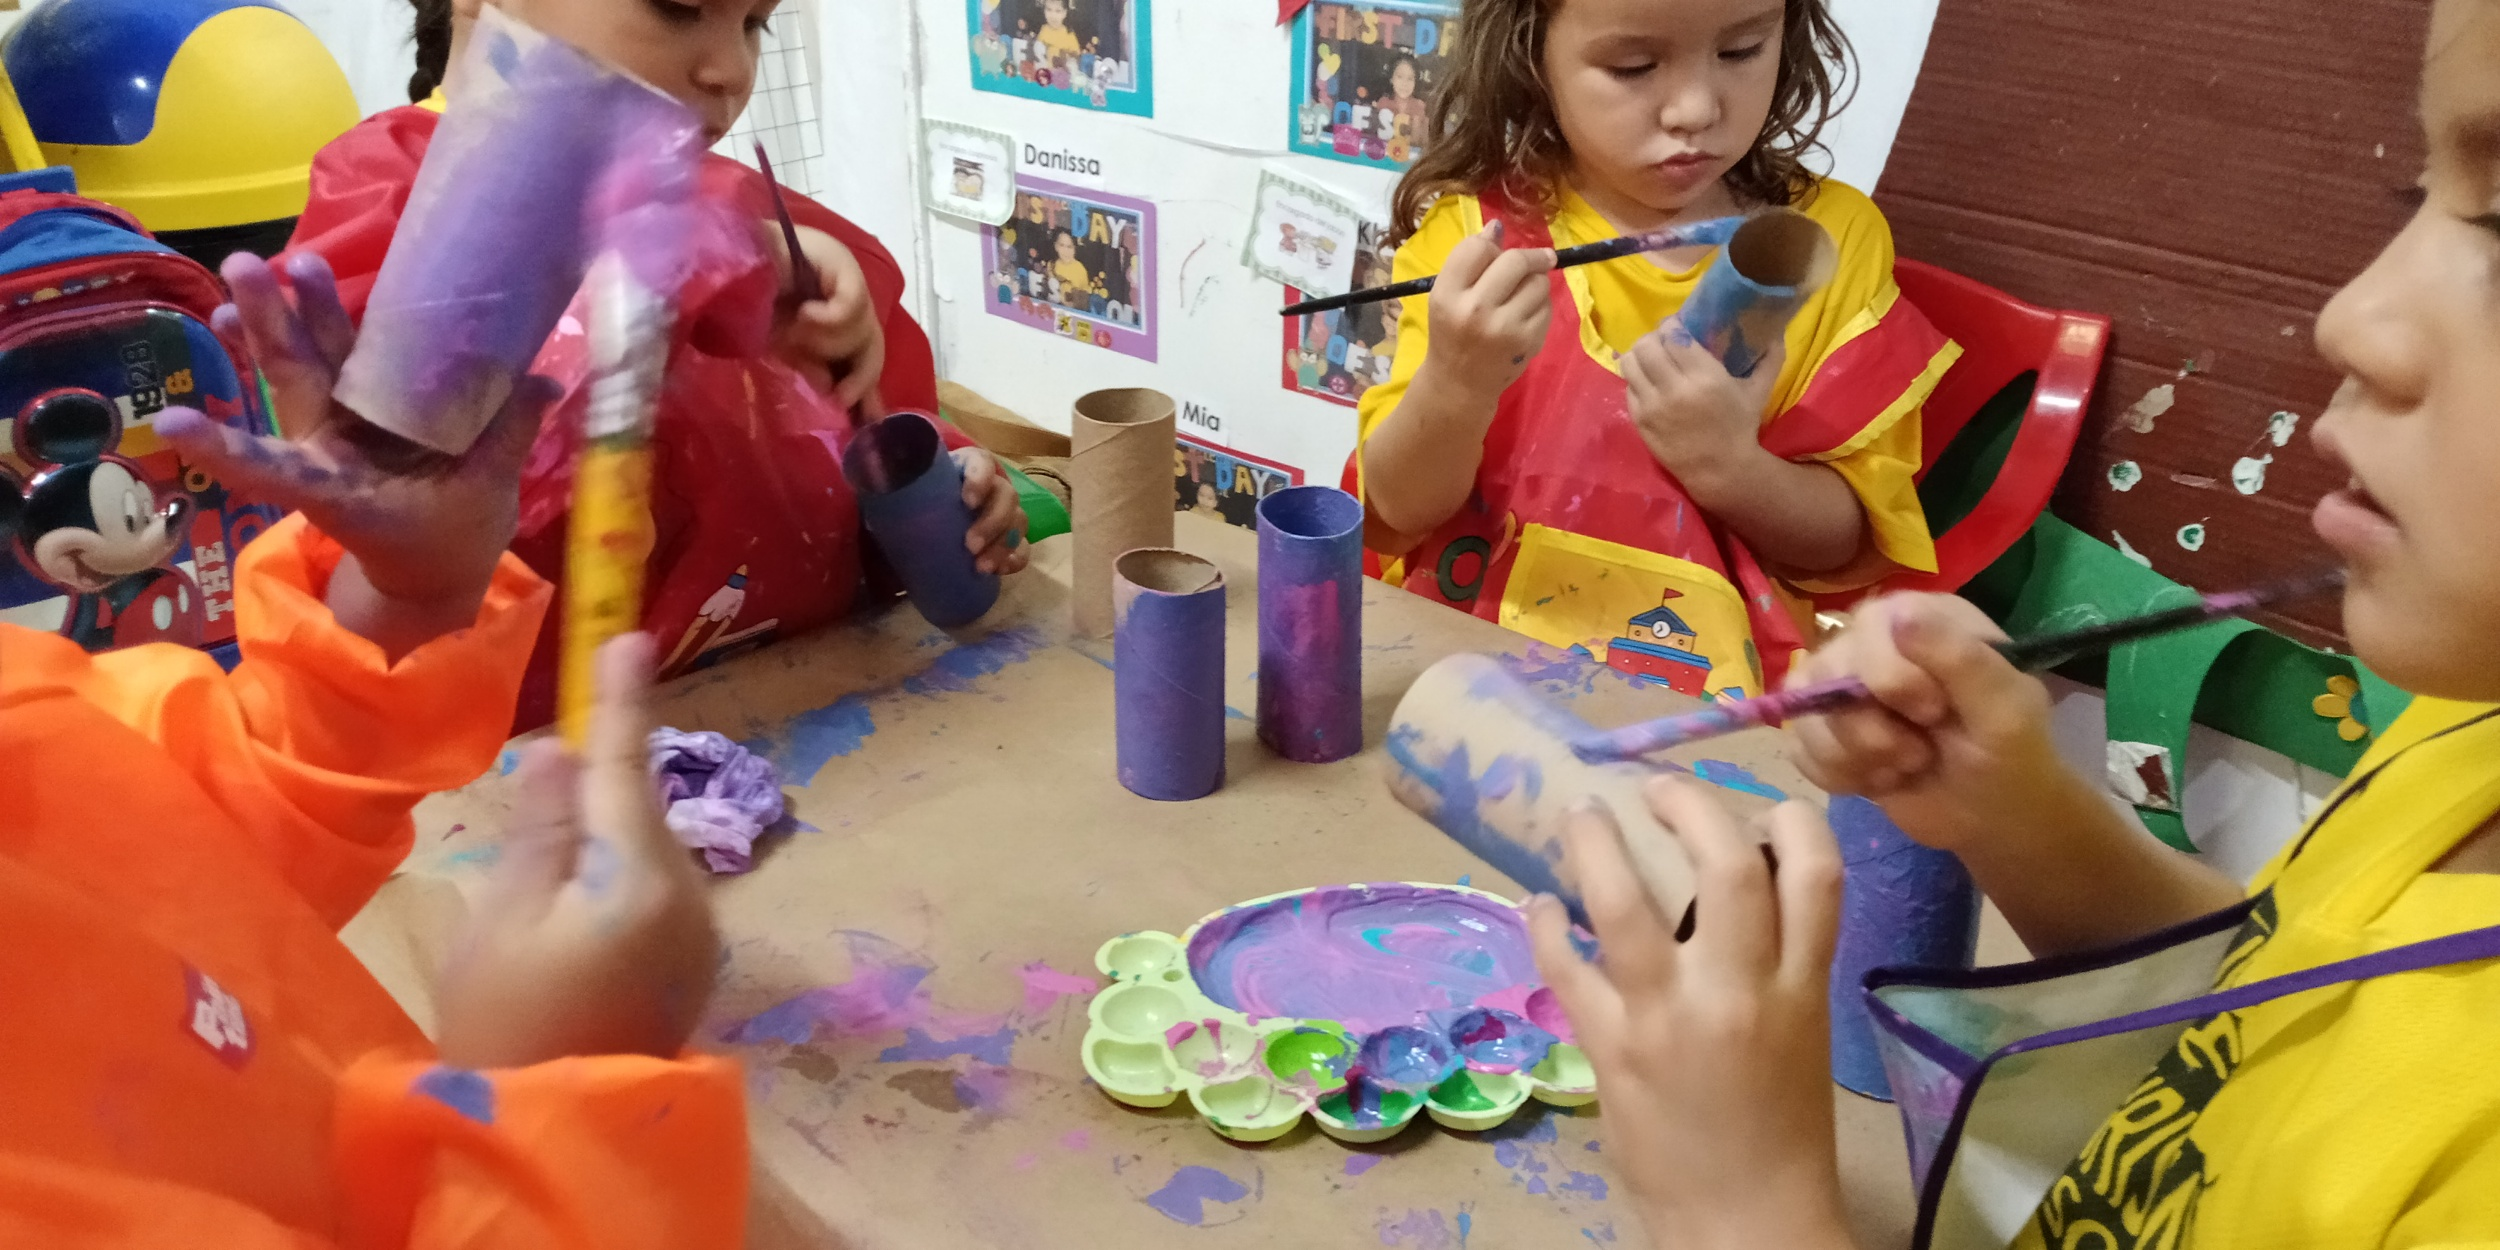 The joy of painting with preschoolers 😁